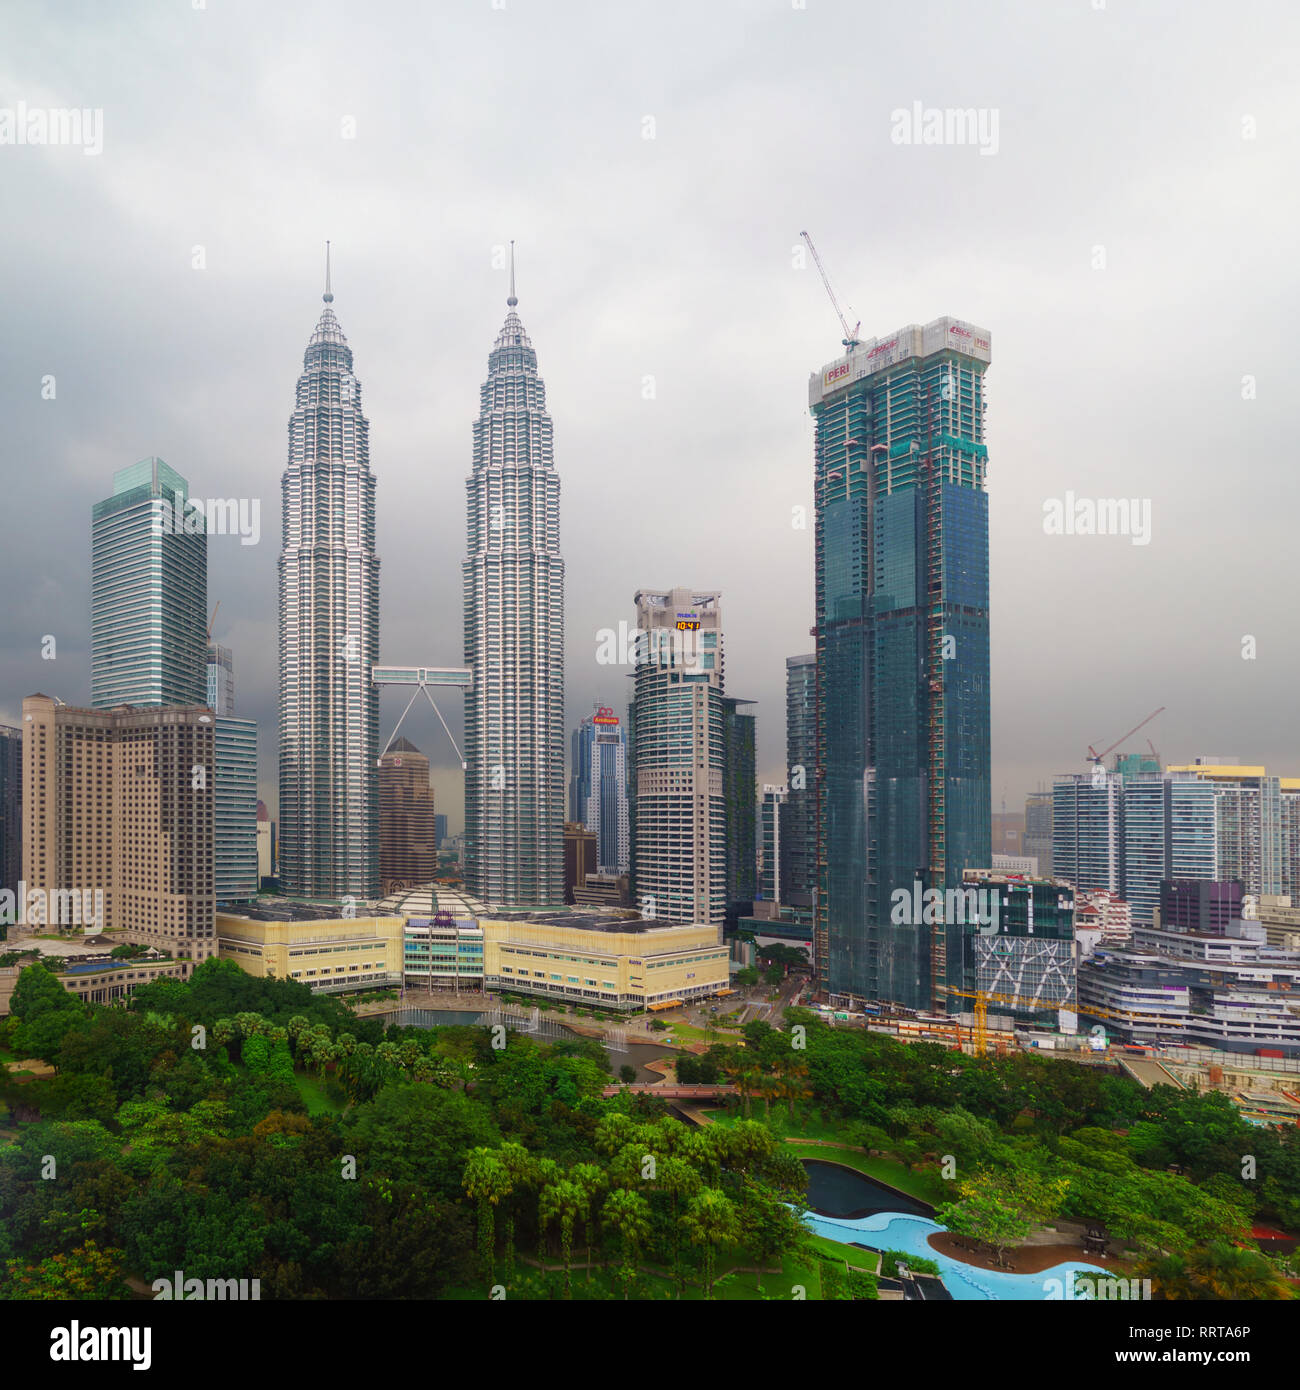 Petronas Twin Towers and the surrounding buildings in stormy weather with overcast sky - Stock Image